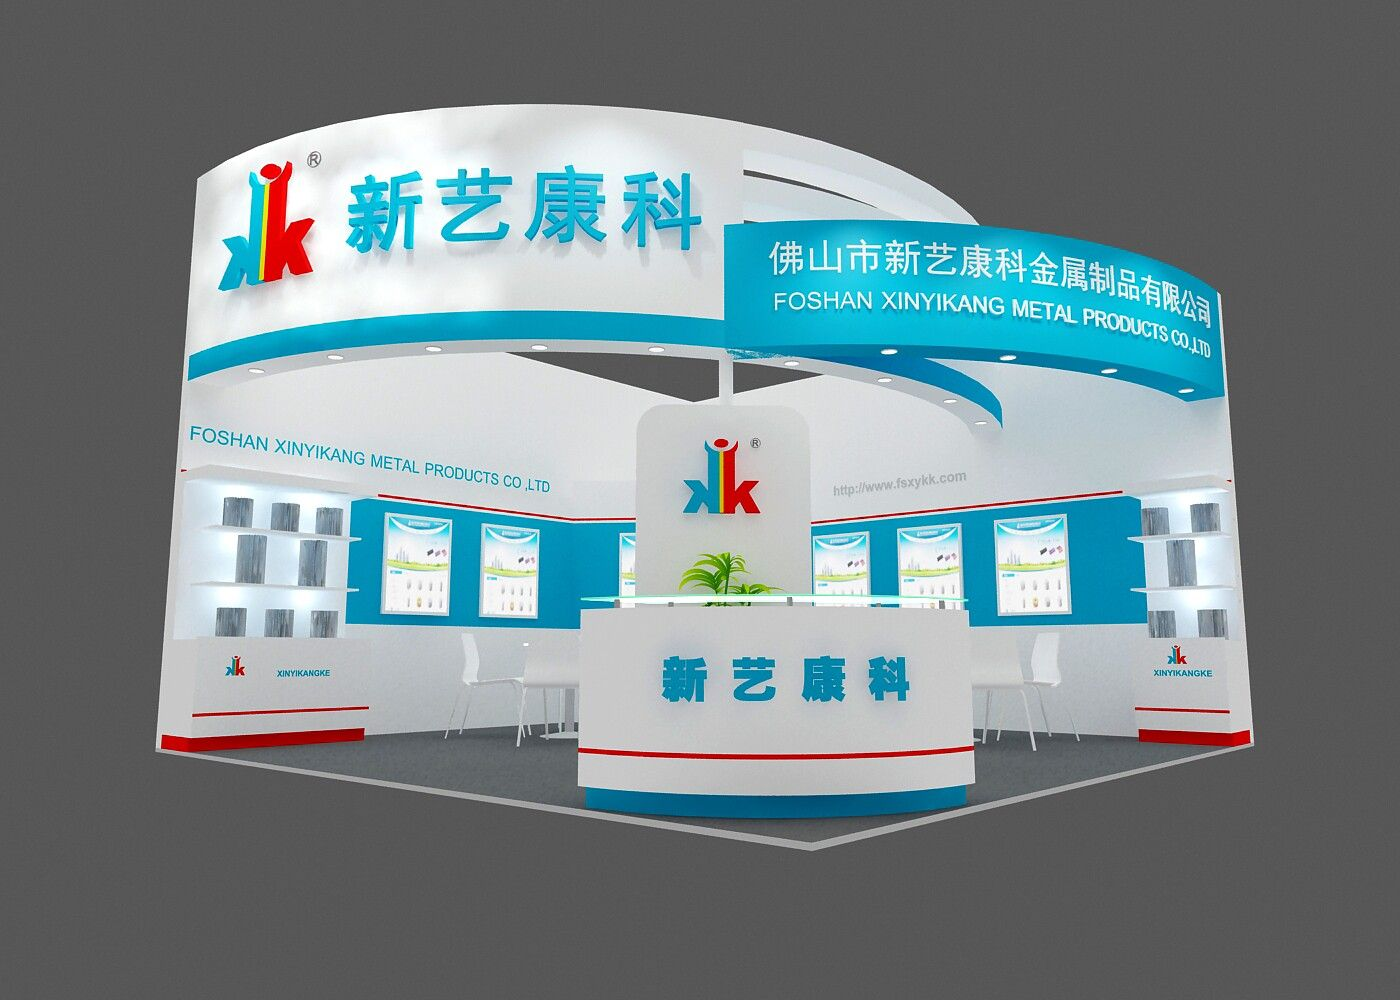 Booth built at Guangzhou International Lighting Exhibition